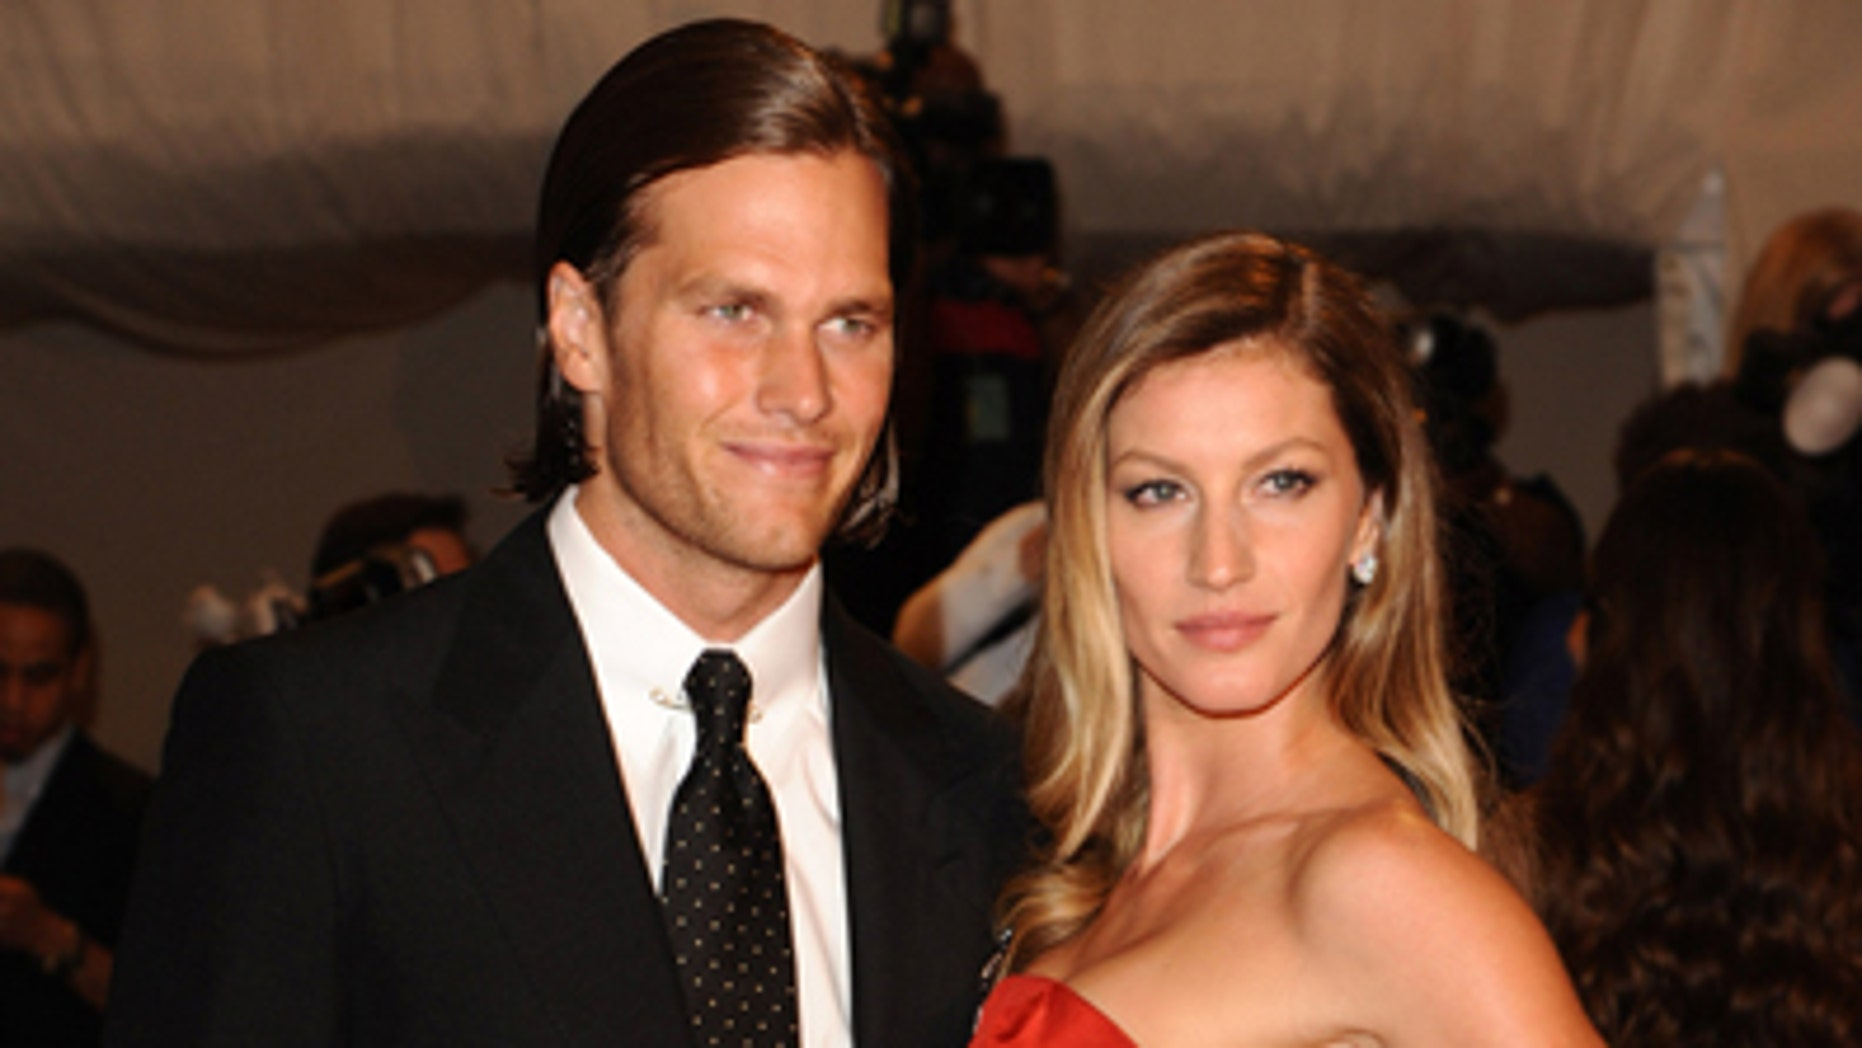 May 2, 2011: New England Patriots quarterback Tom Brady and Gisele Bundchen arrive at the Metropolitan Museum of Art Costume Institute gala in New York.